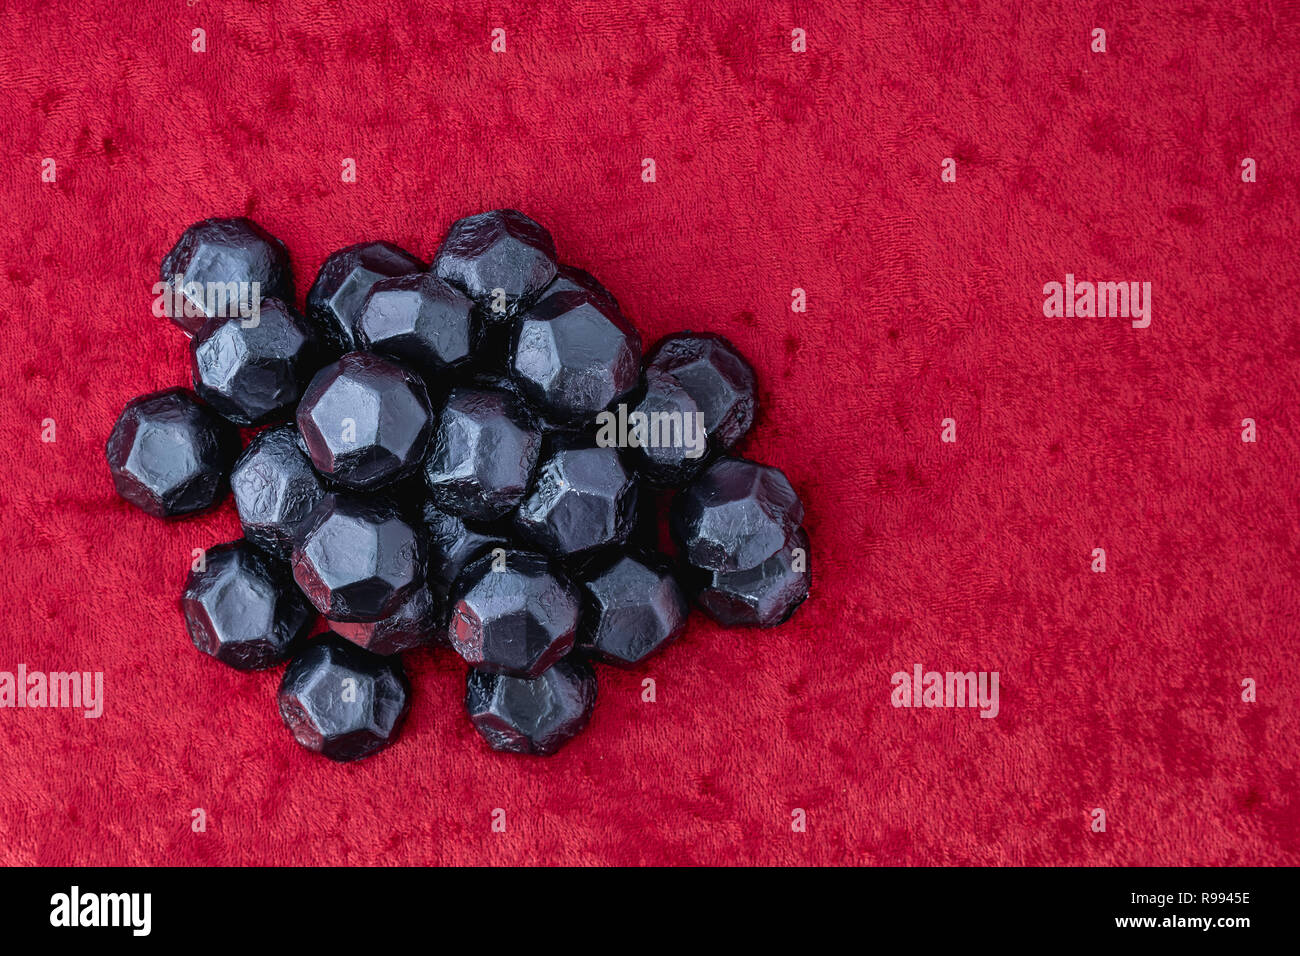 Pile of coal shaped candy on a red velvet background, as a naughty for Christmas concept Stock Photo